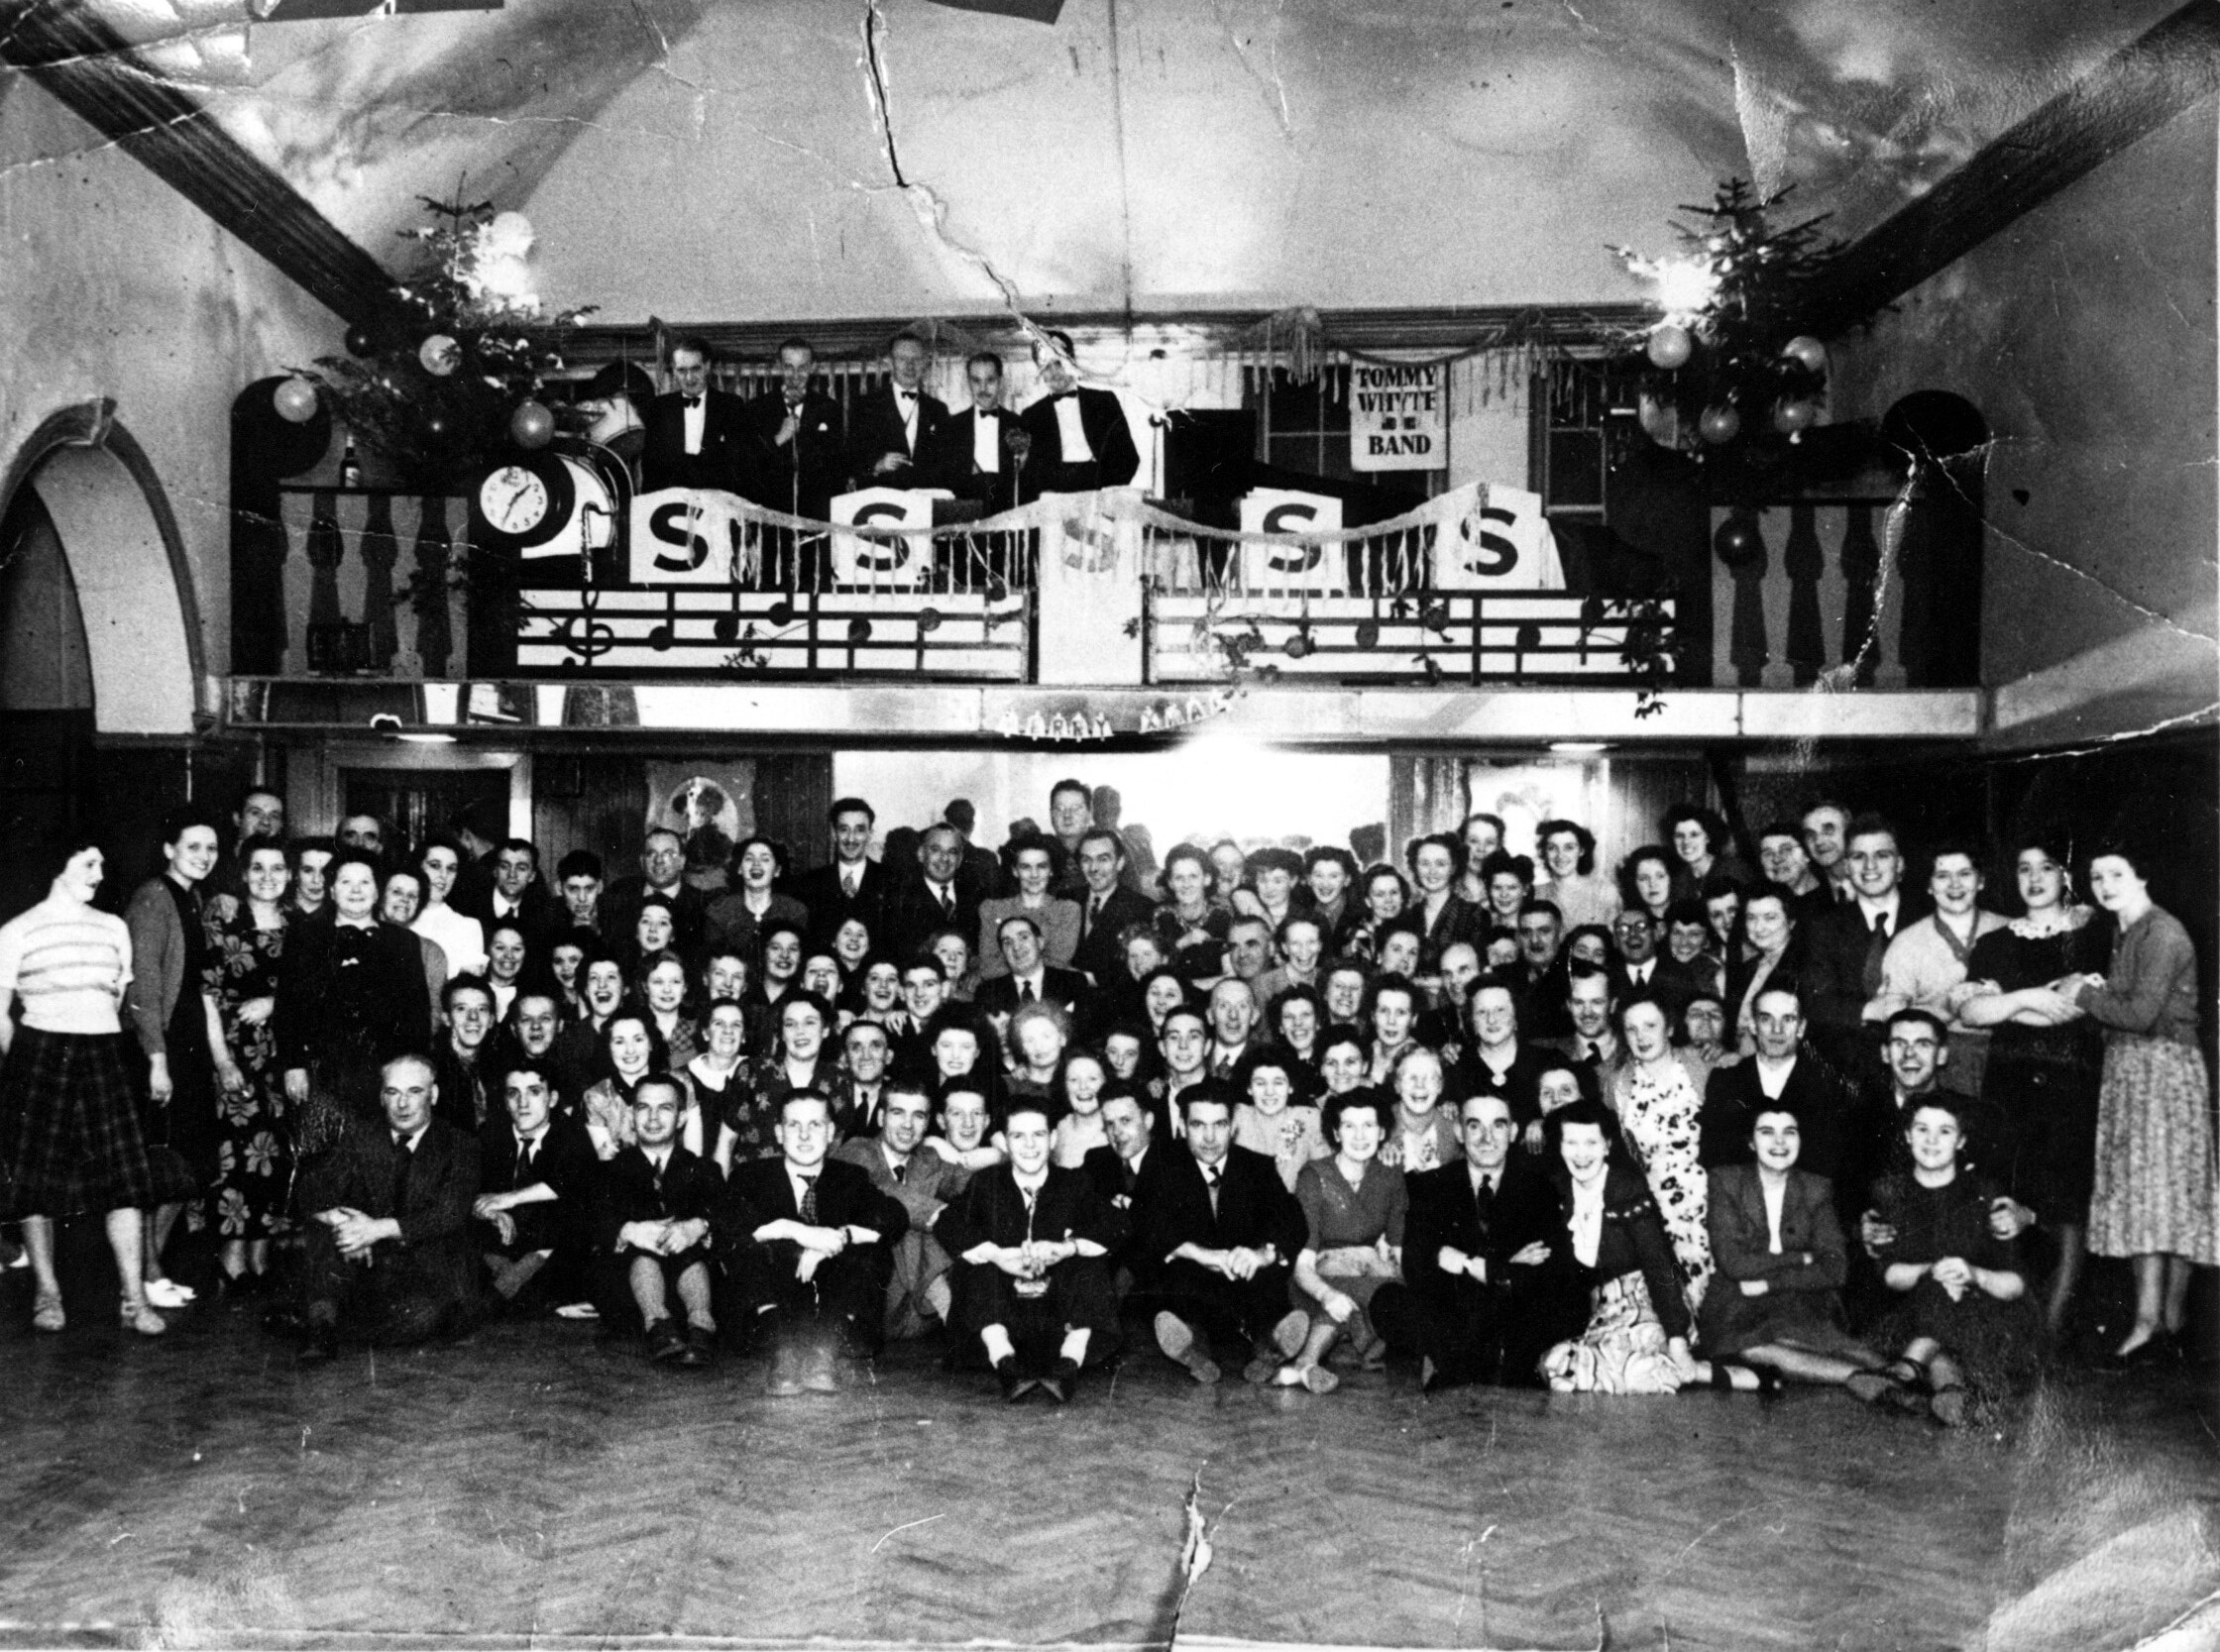 Stewart's Ballroom Staff Christmas Party 1950